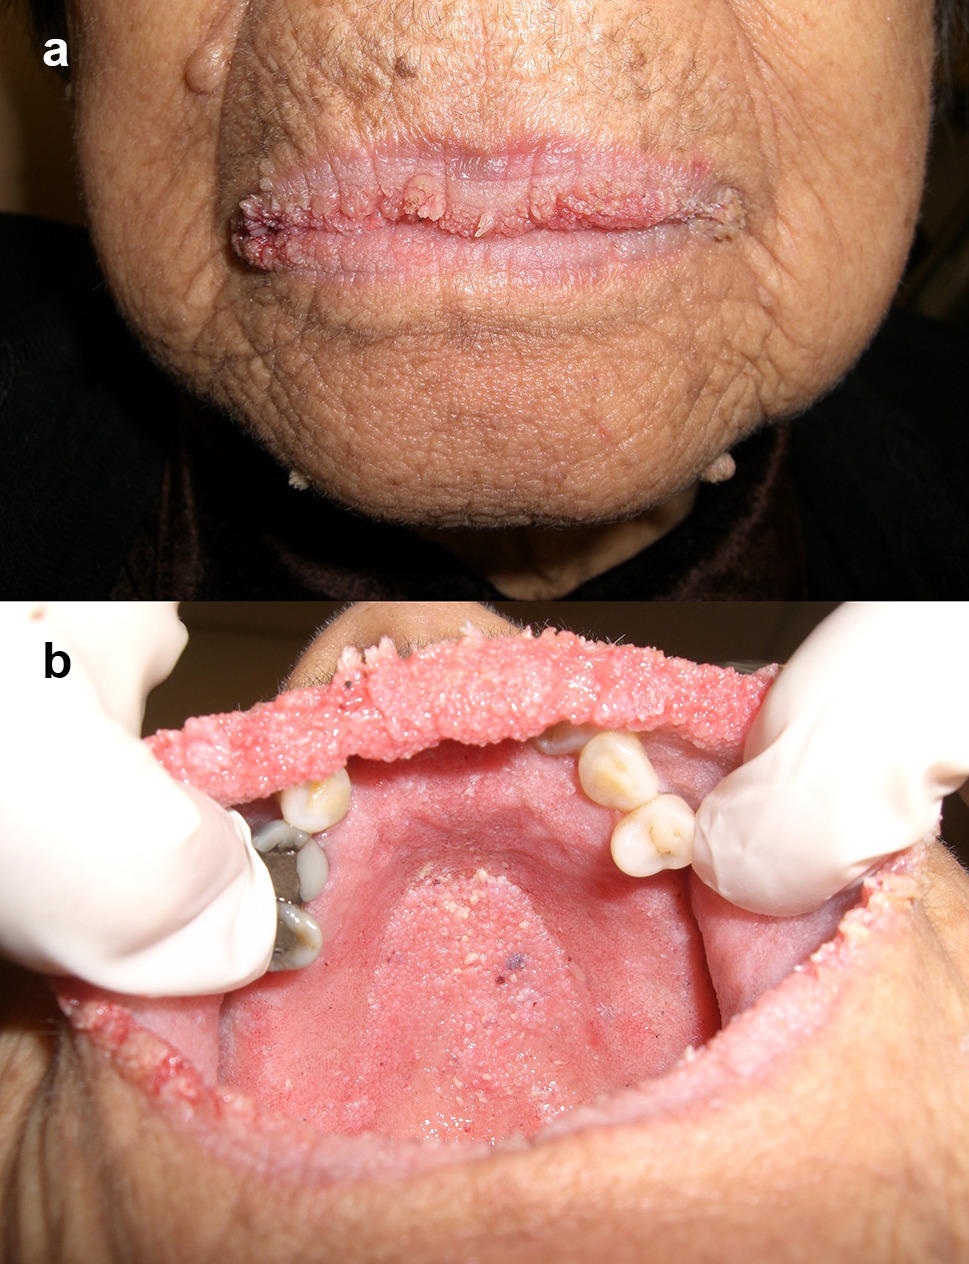 Non-HPV Papillary Lesions of the Oral Mucosa: Clinical and